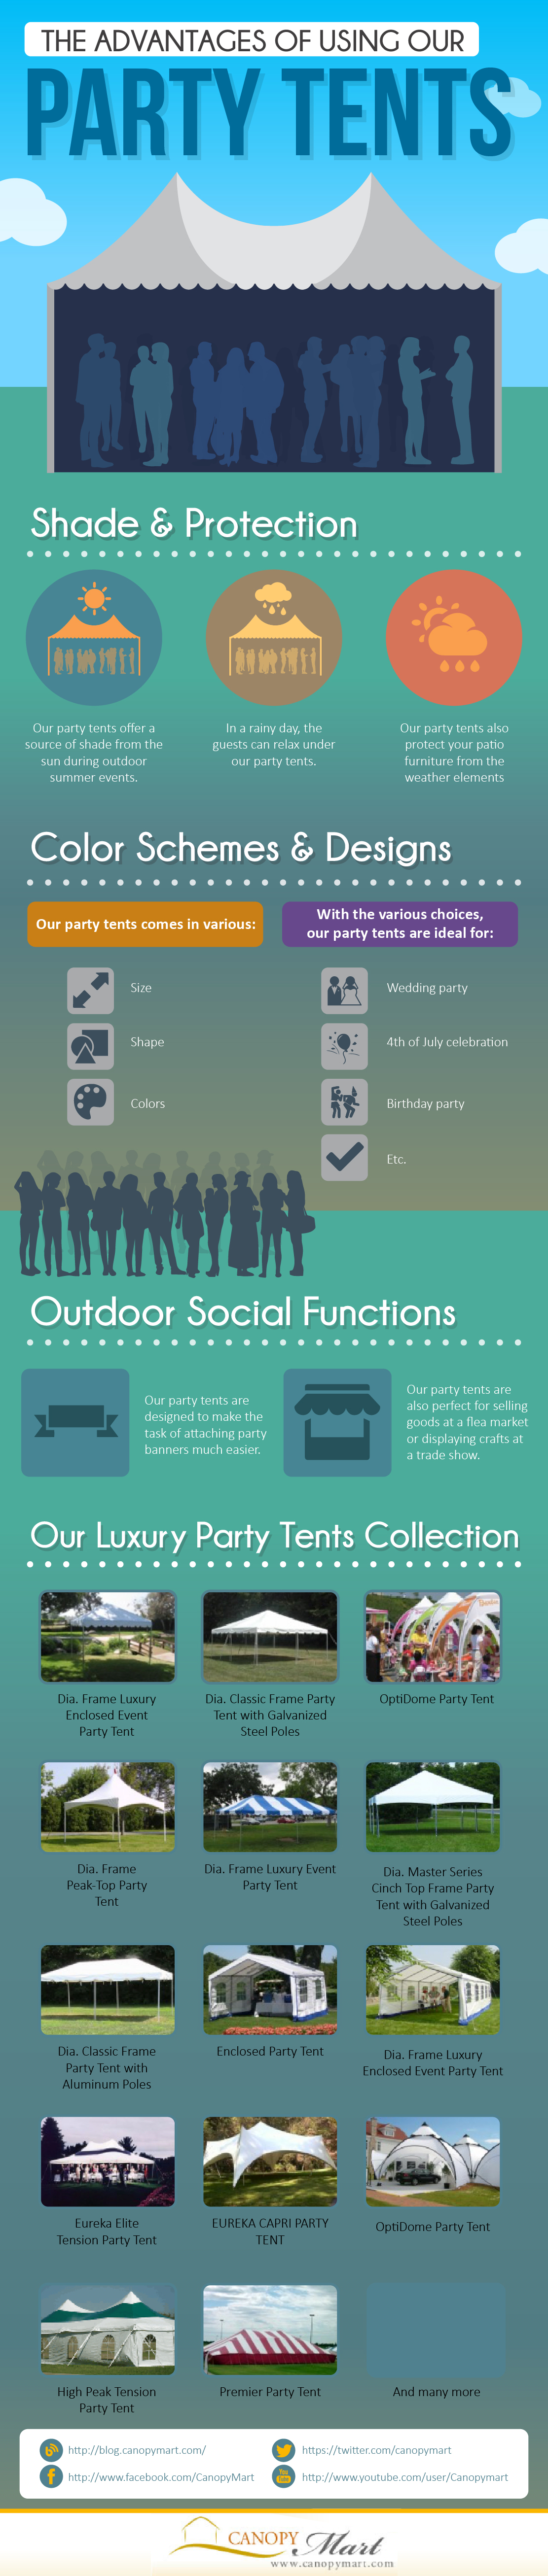 Canopy Mart: The Advantages of Using Our Party Tents